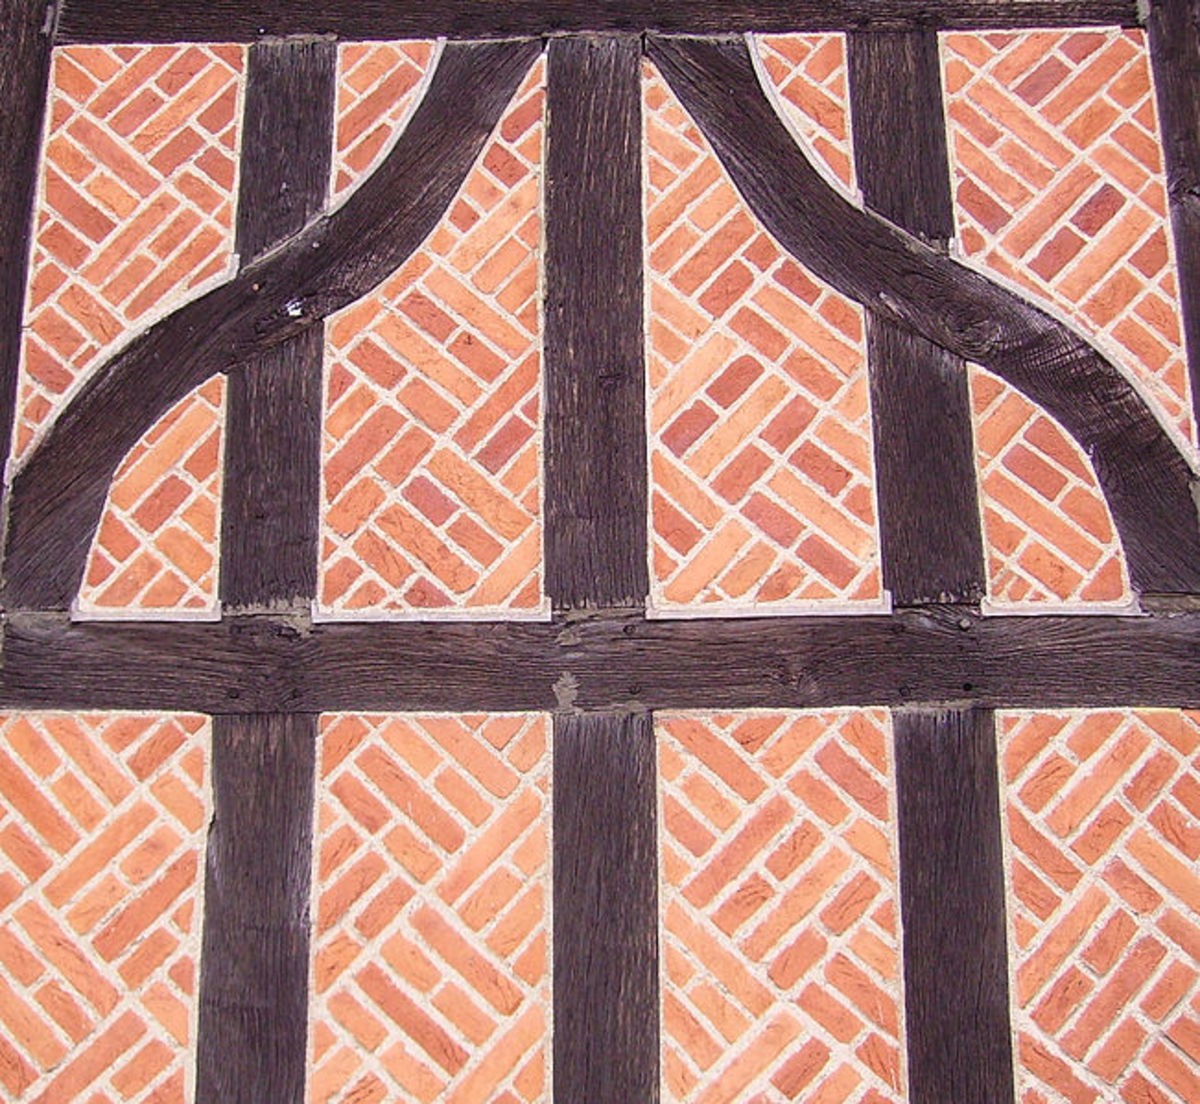 A horseshoe cloister in Windsor Castle, oak and brick.